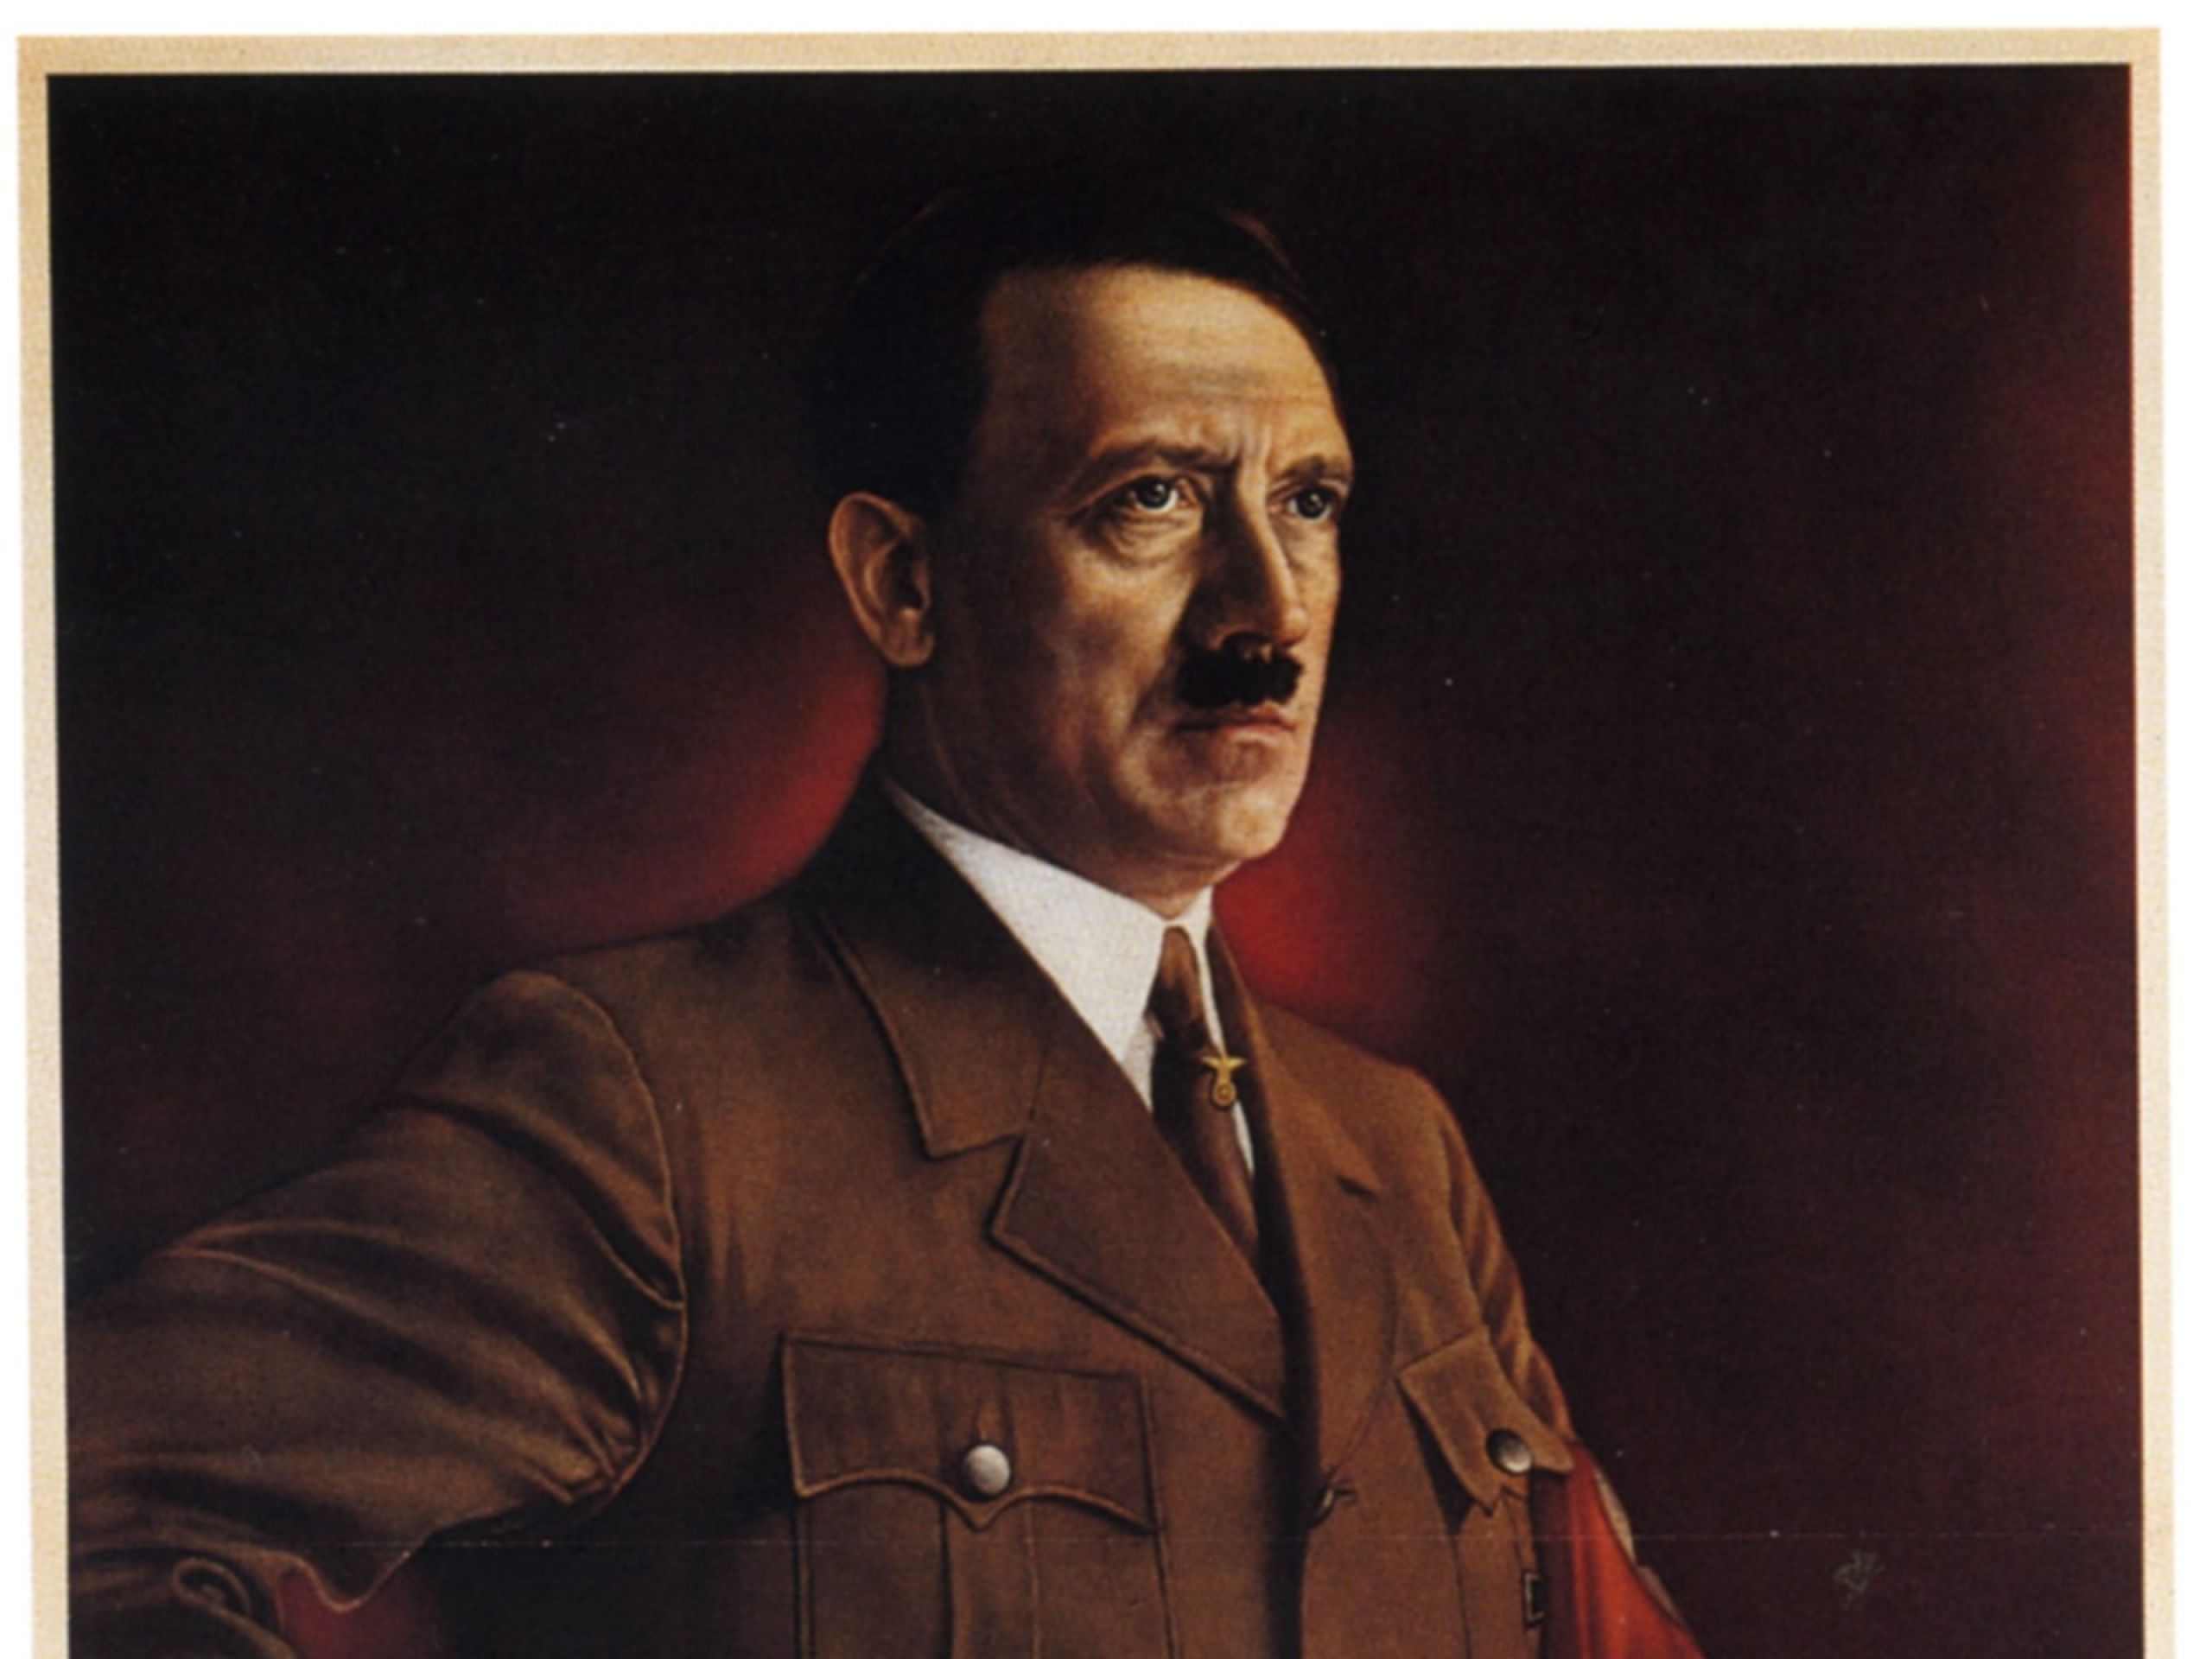 Adolf Hitler Wallpaper: Adolf Hitler Wallpapers HD : Find Best Latest Adolf Hitler